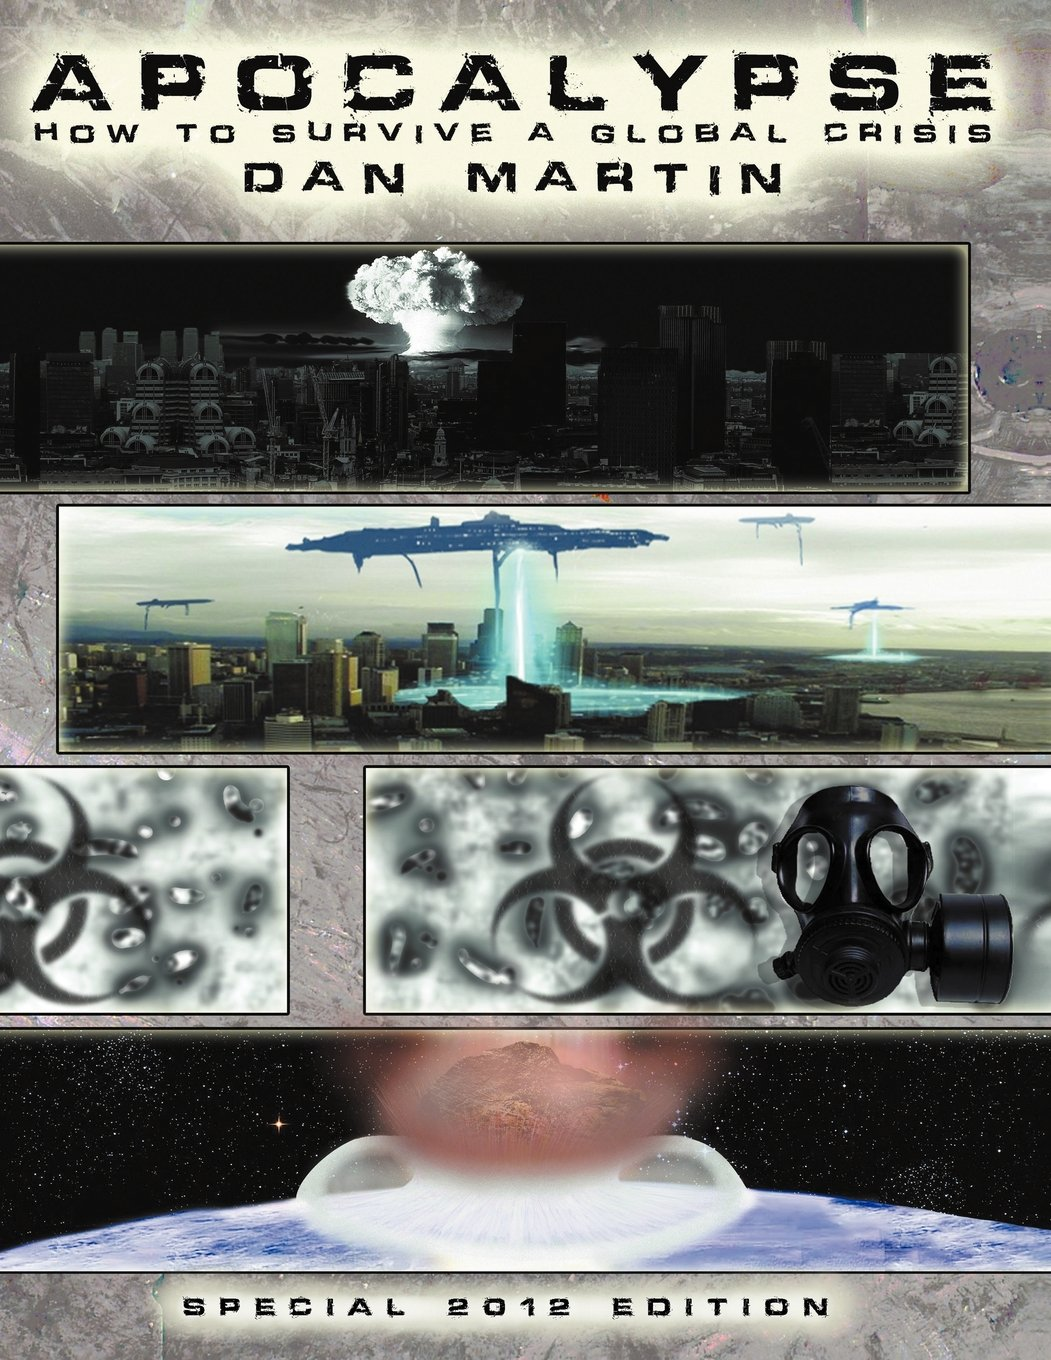 Apocalypse: How to Survive a Global Crisis by Dan Martin